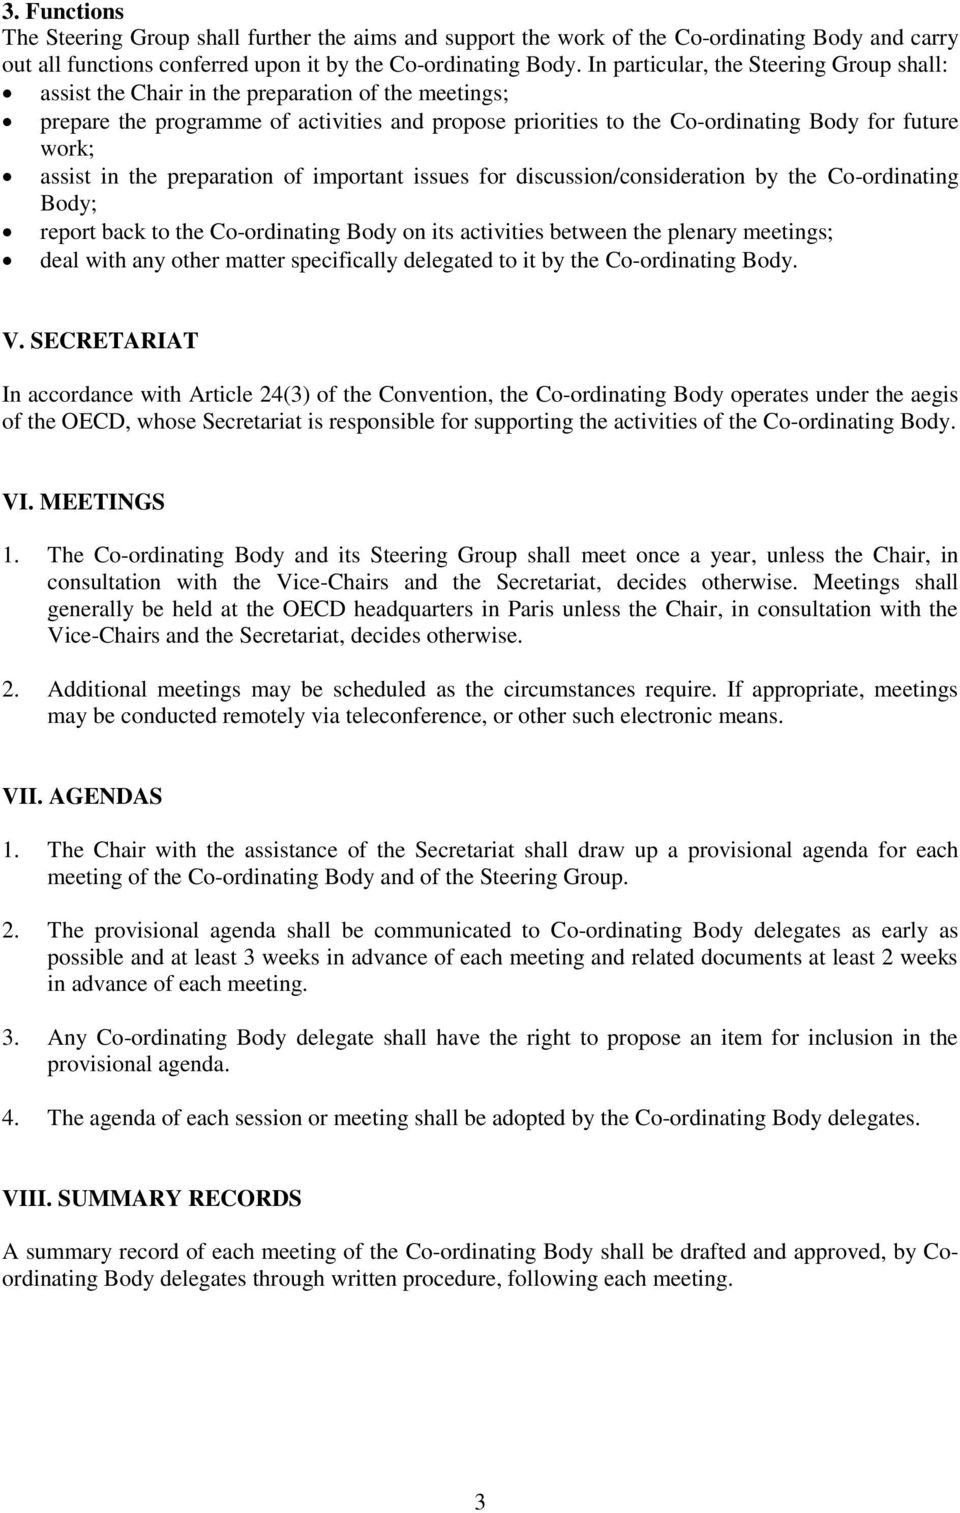 assist in the preparation of important issues for discussion/consideration by the Co-ordinating Body; report back to the Co-ordinating Body on its activities between the plenary meetings; deal with